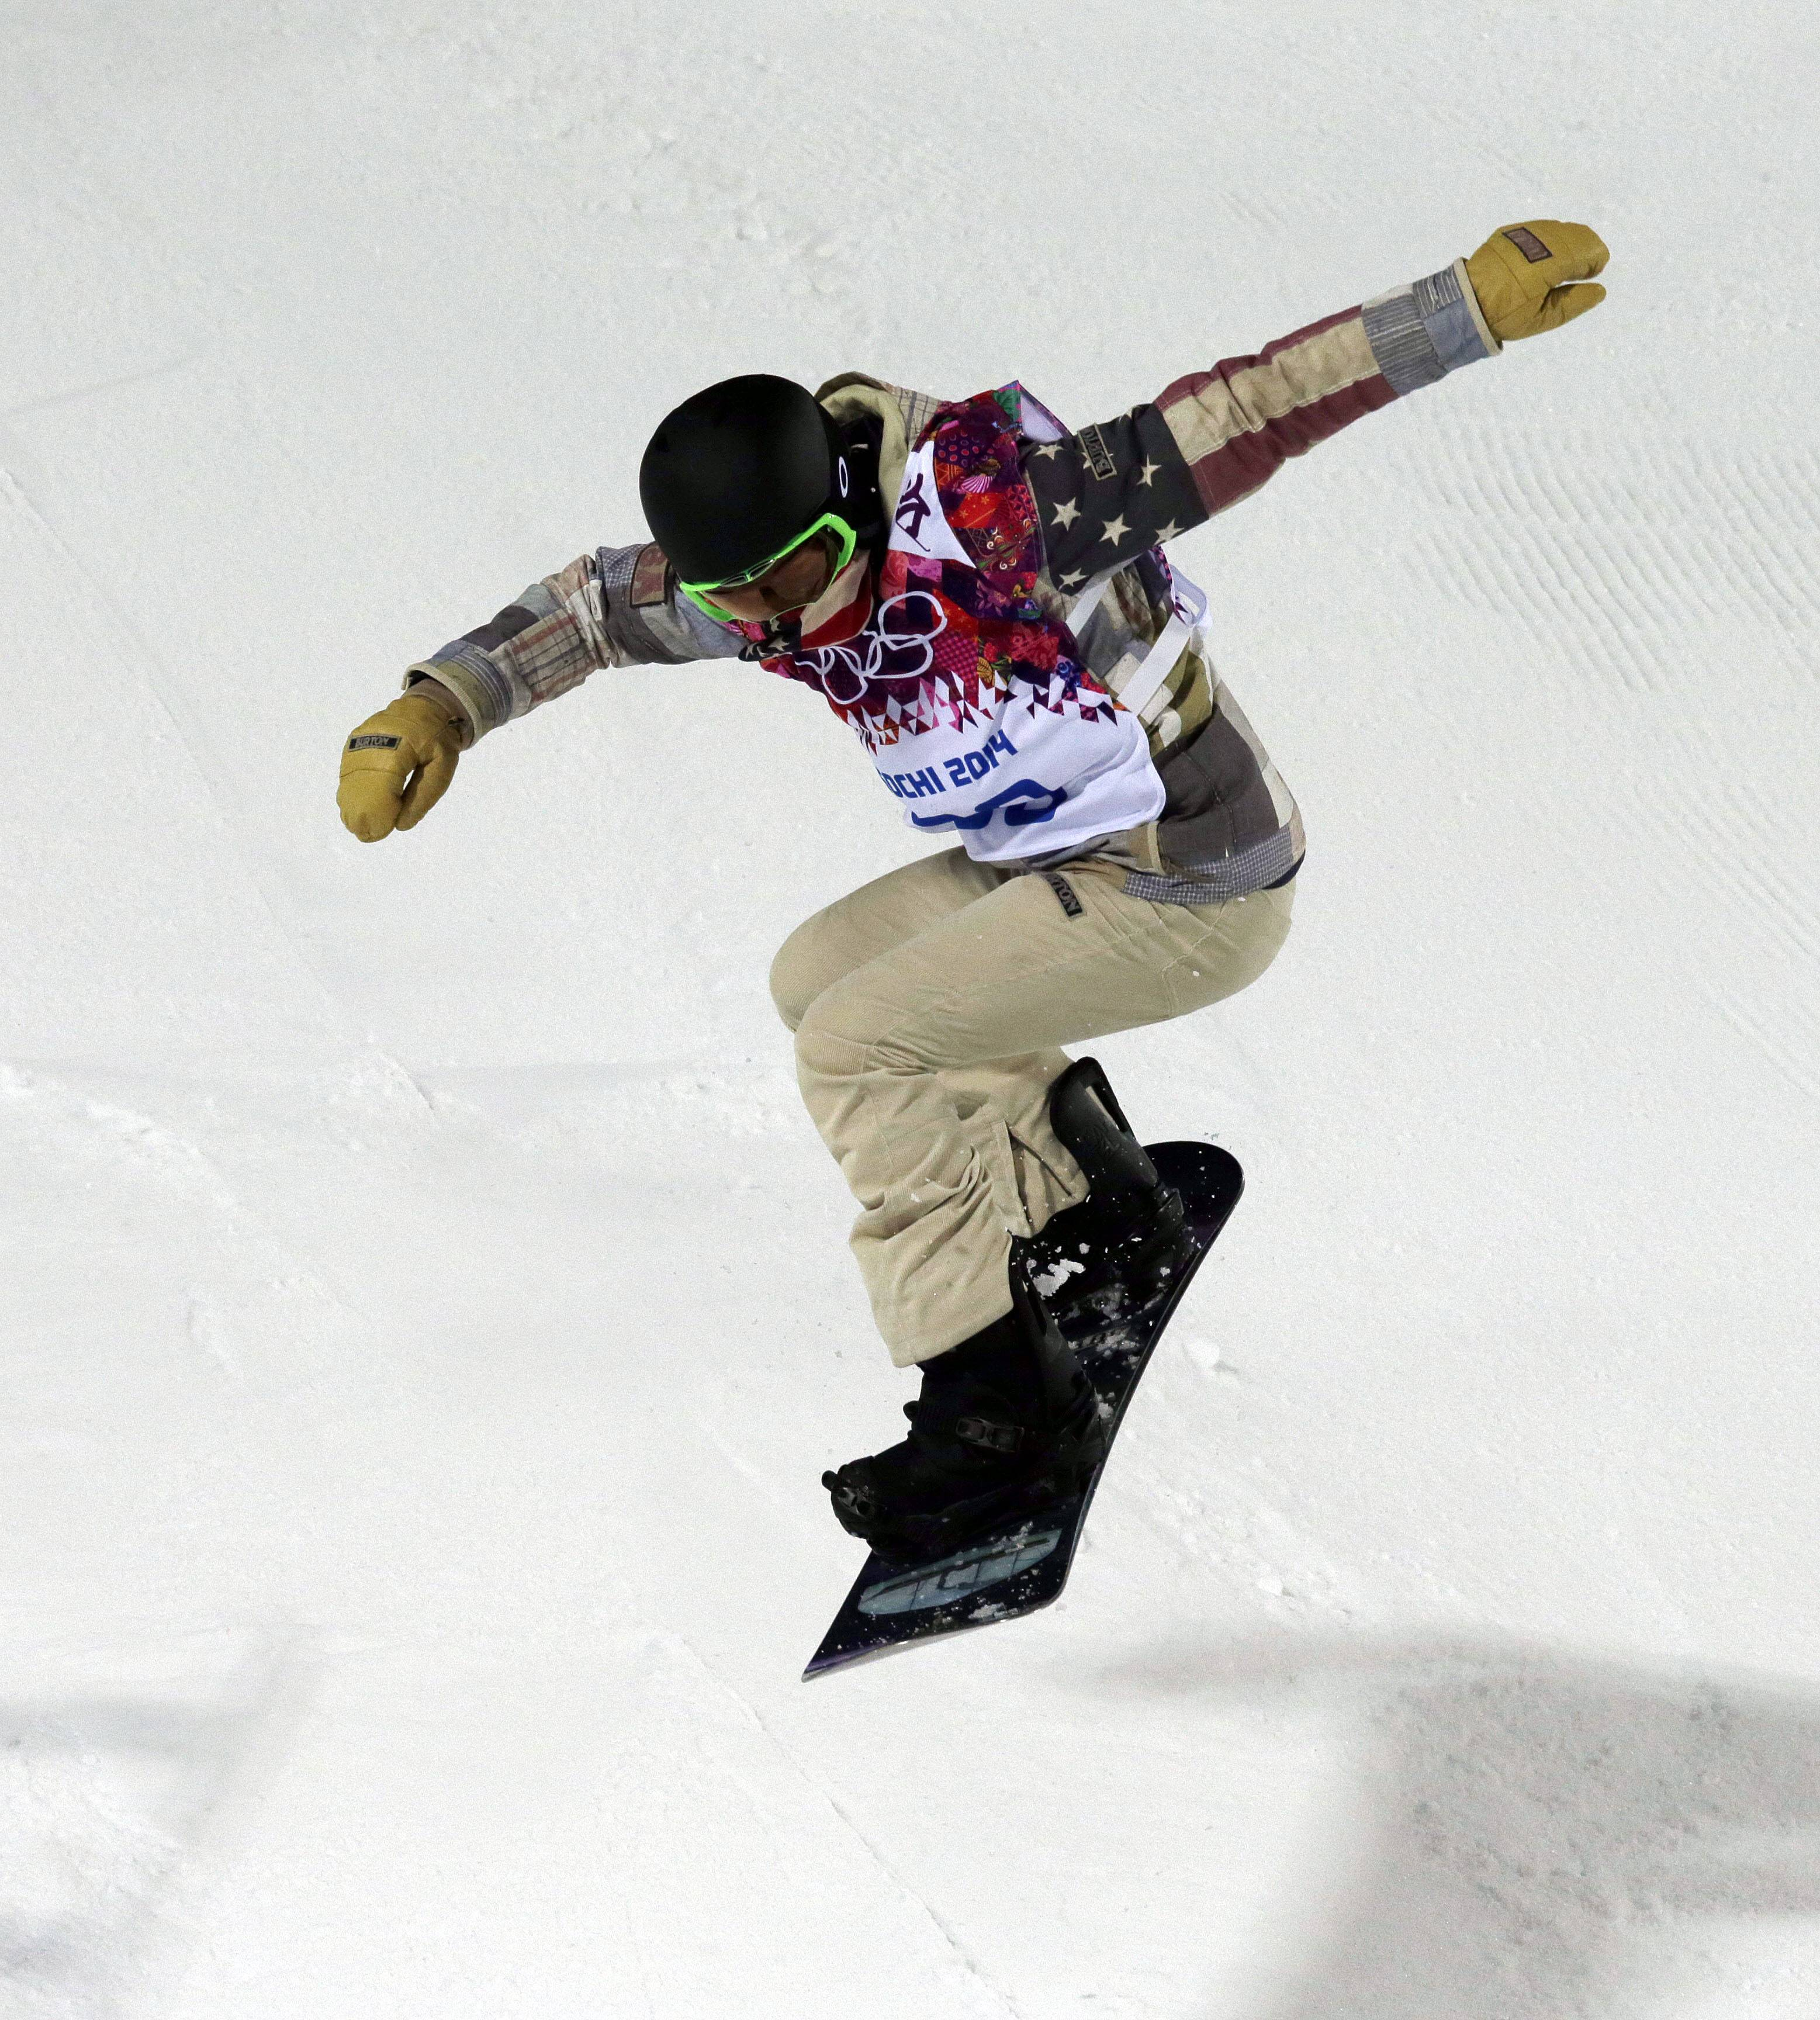 Shaun White of the United States trains in the half pipe at the Rosa Khutor Extreme Park, at the 2014 Winter Olympics Sunday in Krasnaya Polyana, Russia. Half-pipe competition starts Tuesday.